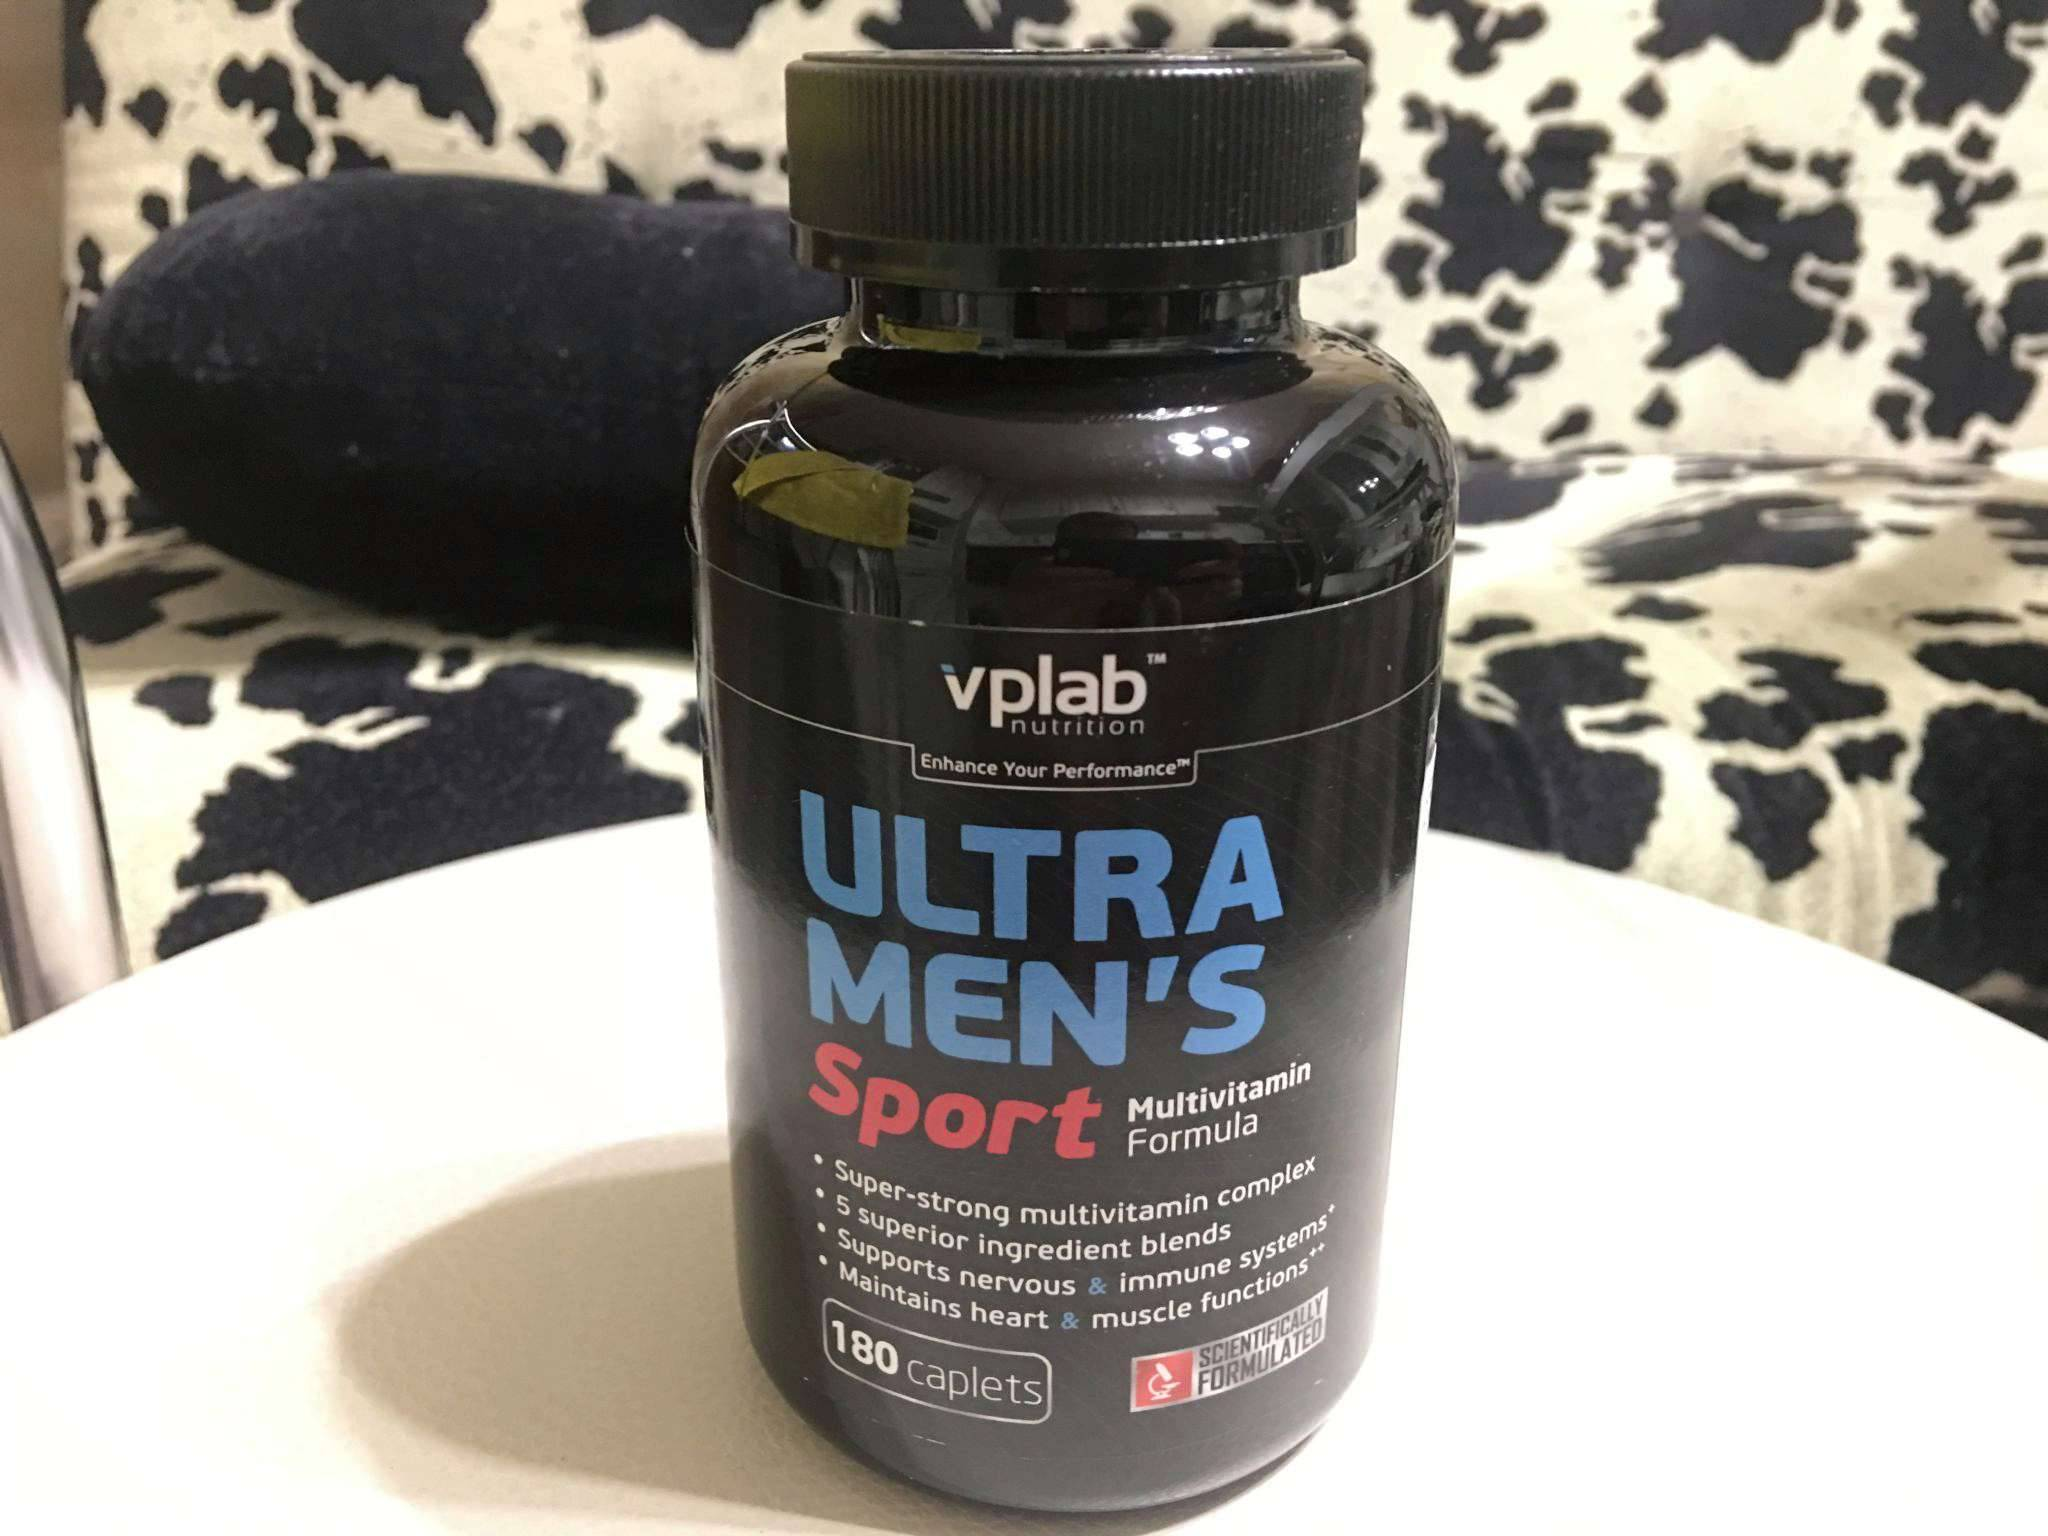 Ultra men's sport multivitamin formula от vplab: как принимать